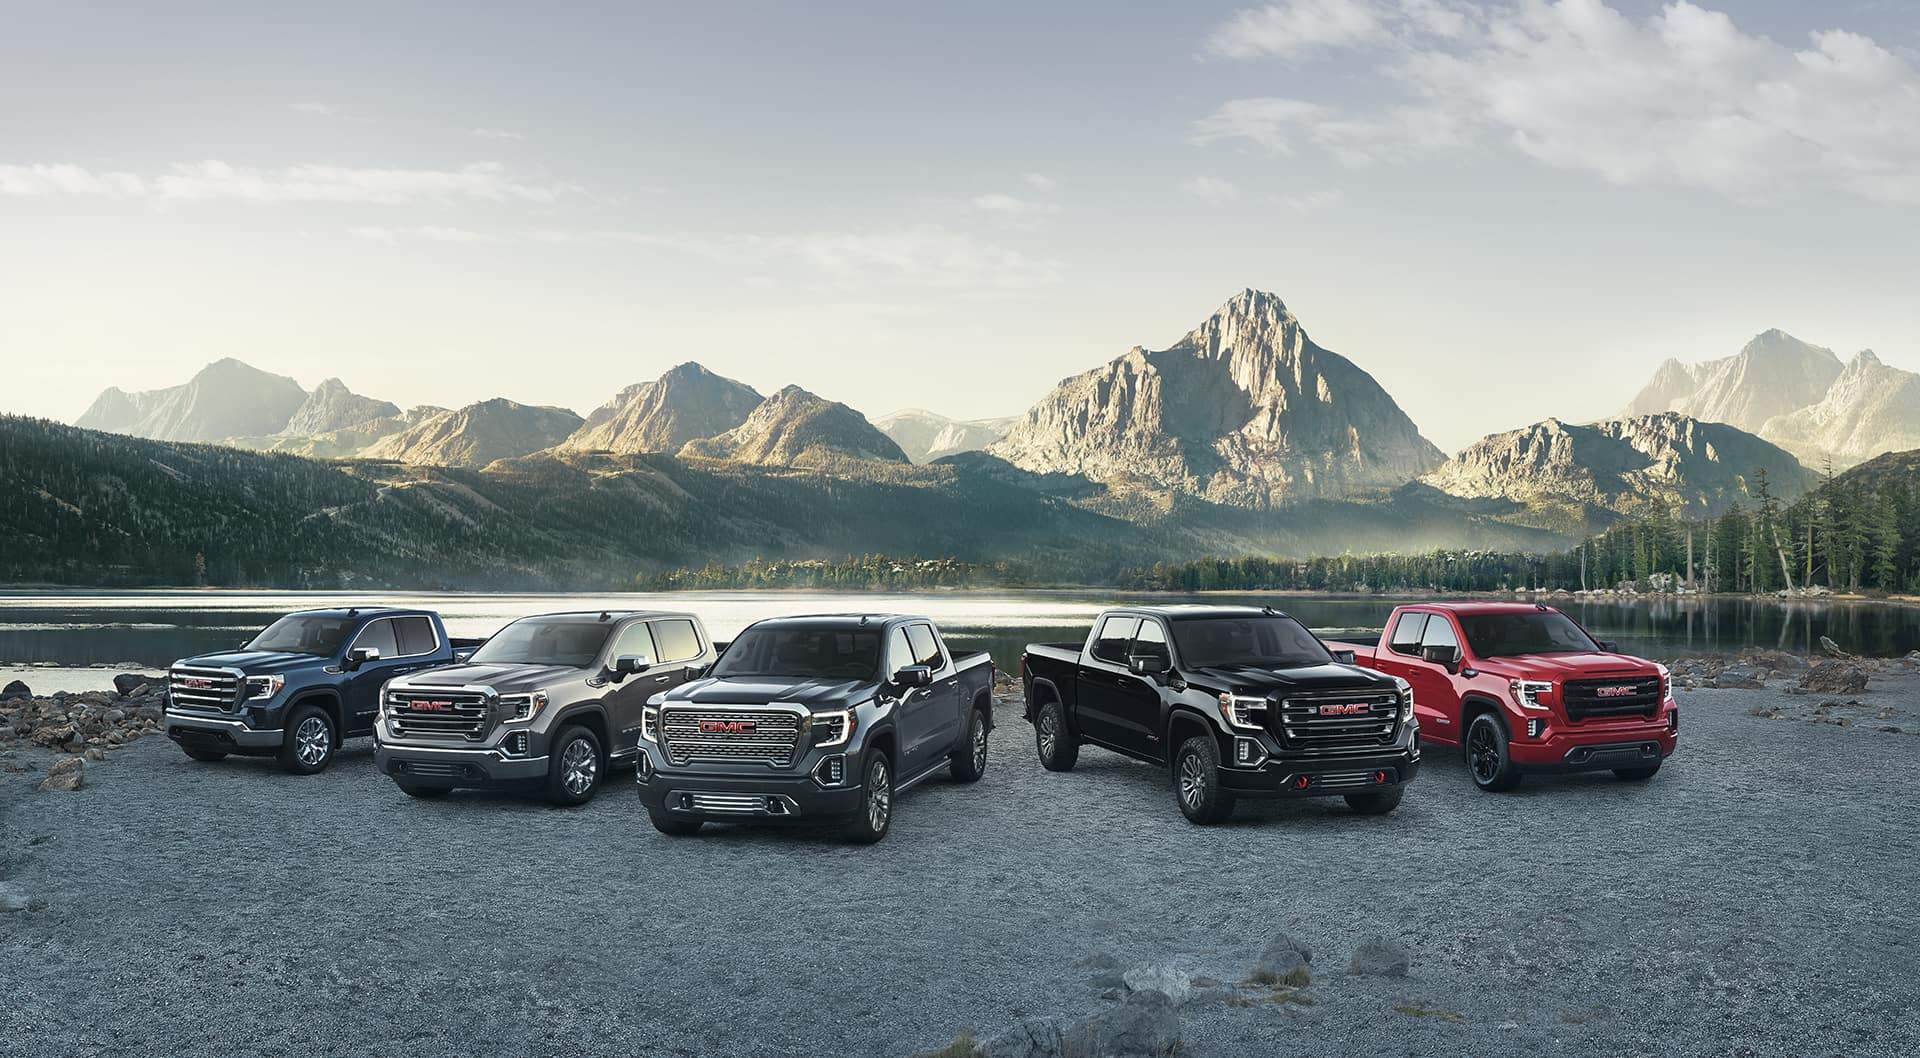 gmc sierra line up in front of mountians